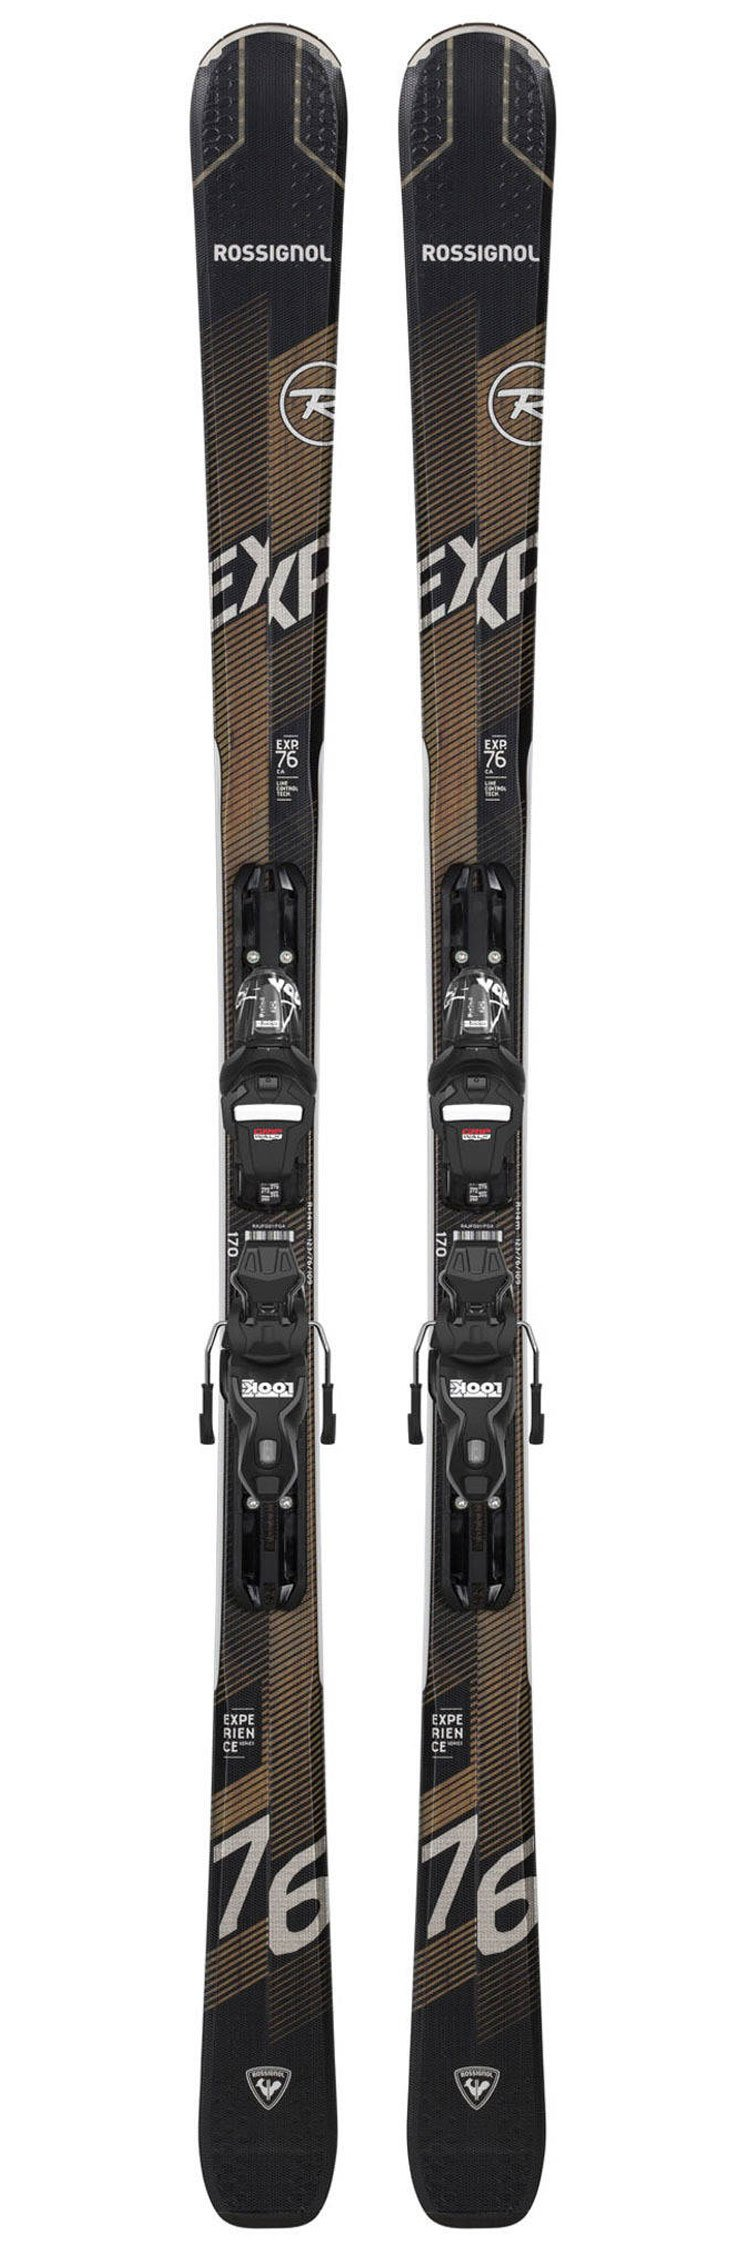 rossignol experience 76 2021